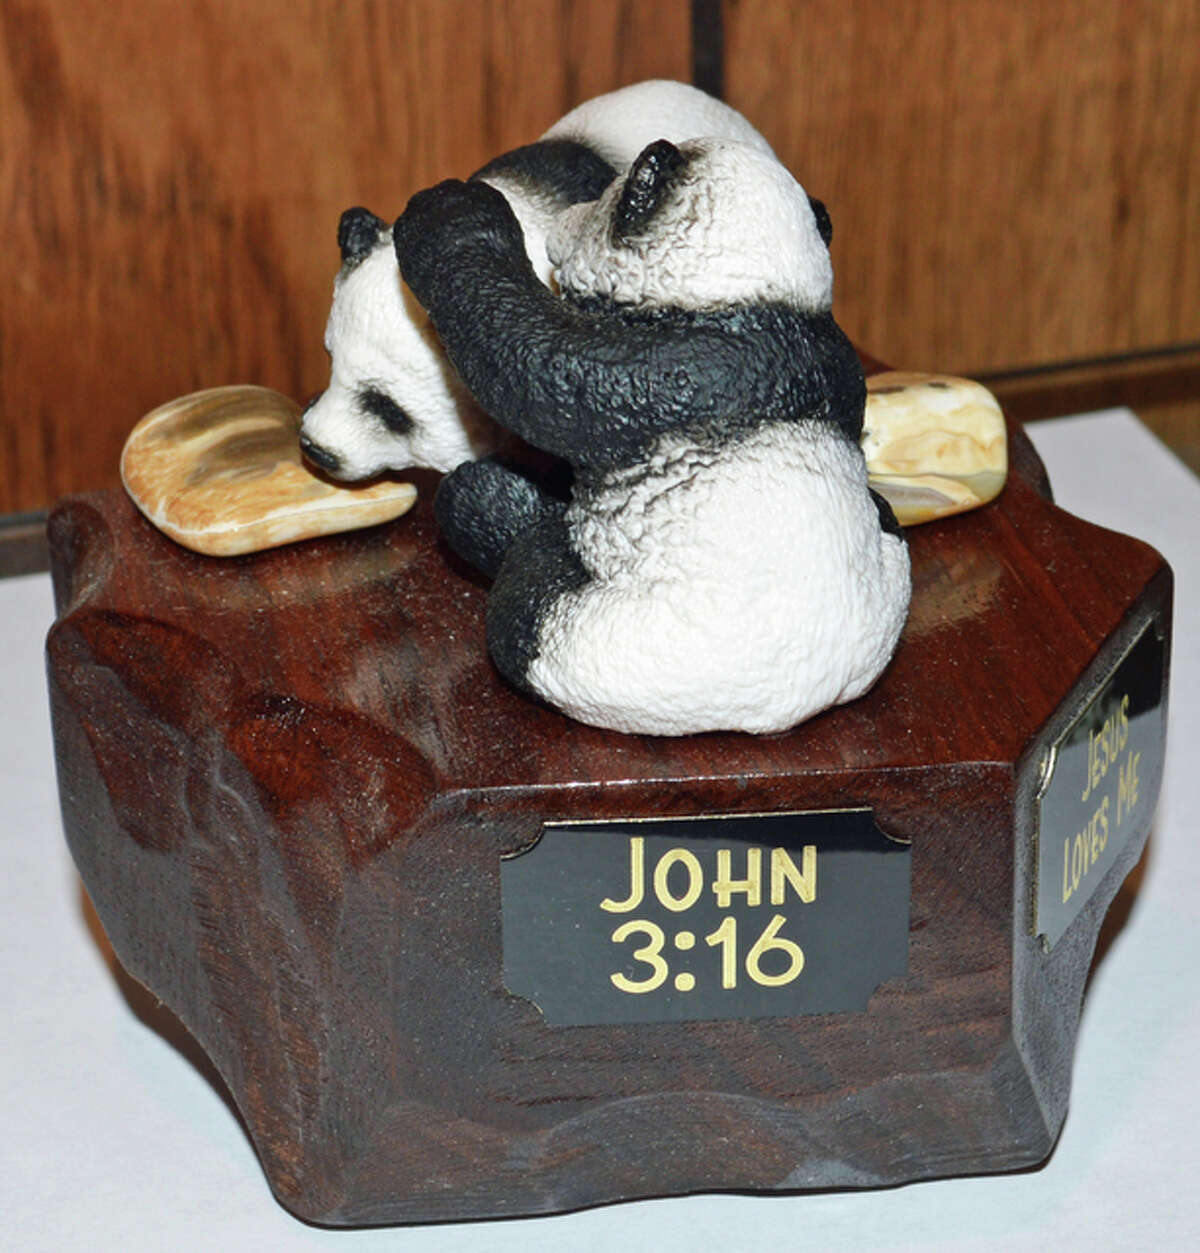 Dennis Hunt creates plaques that offer a message and inspire people. Many of them also include a reference to the John 3:16, Hunt's favorite Bible verse.